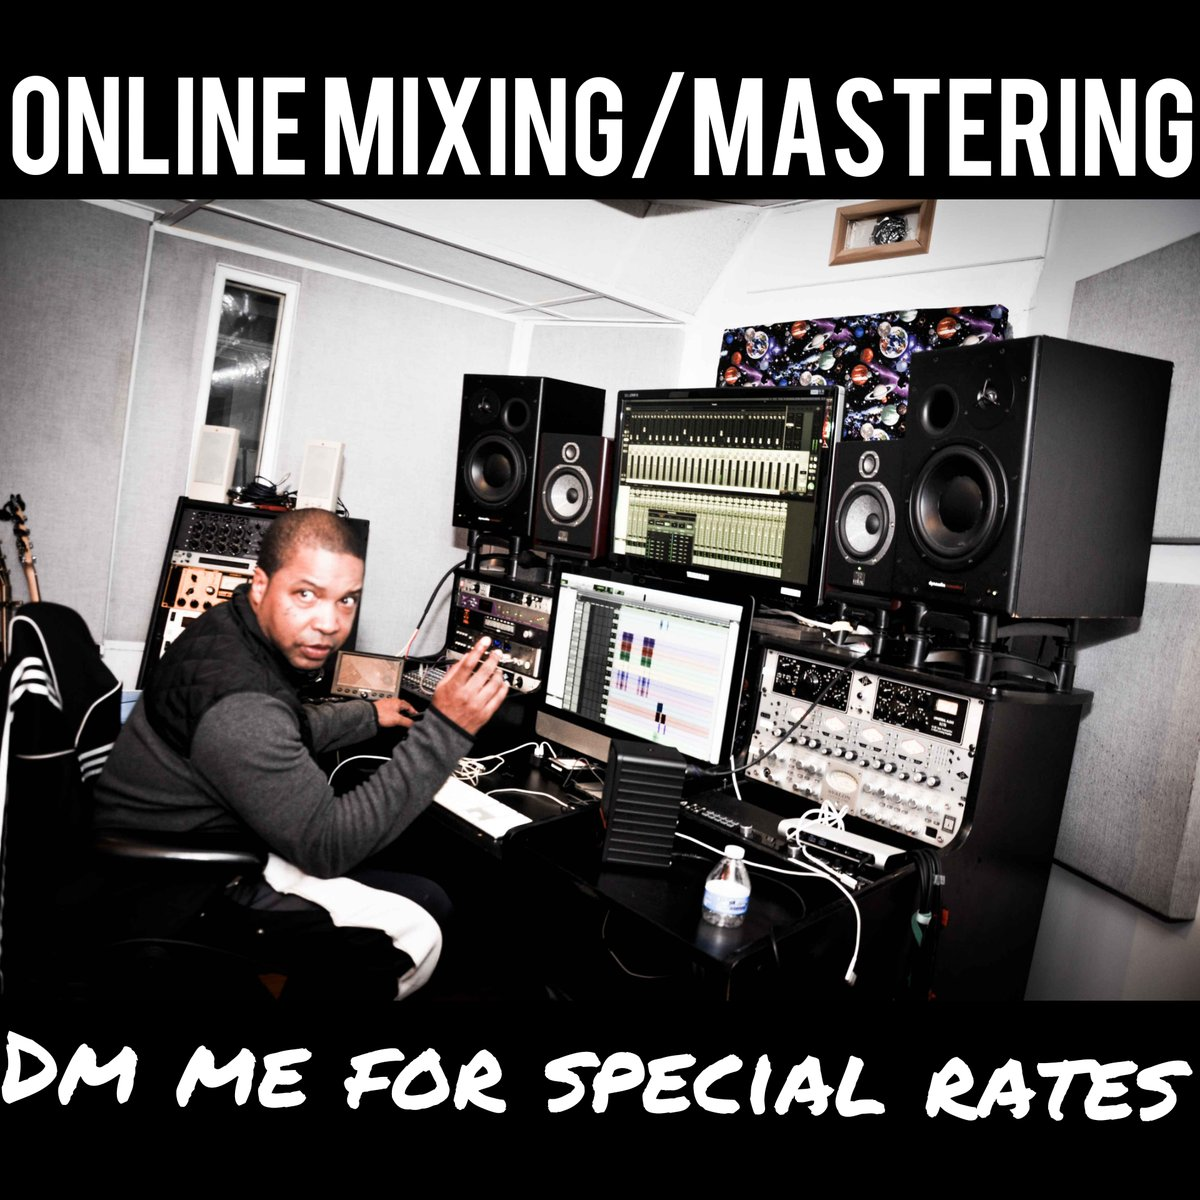 Get your music to sound the way you always intended to. Take advantage of our Online Mixing/Mastering Special.   Go here: http://bit.ly/krushstudios  #mixing #mastering pic.twitter.com/KNXQUB2AIi